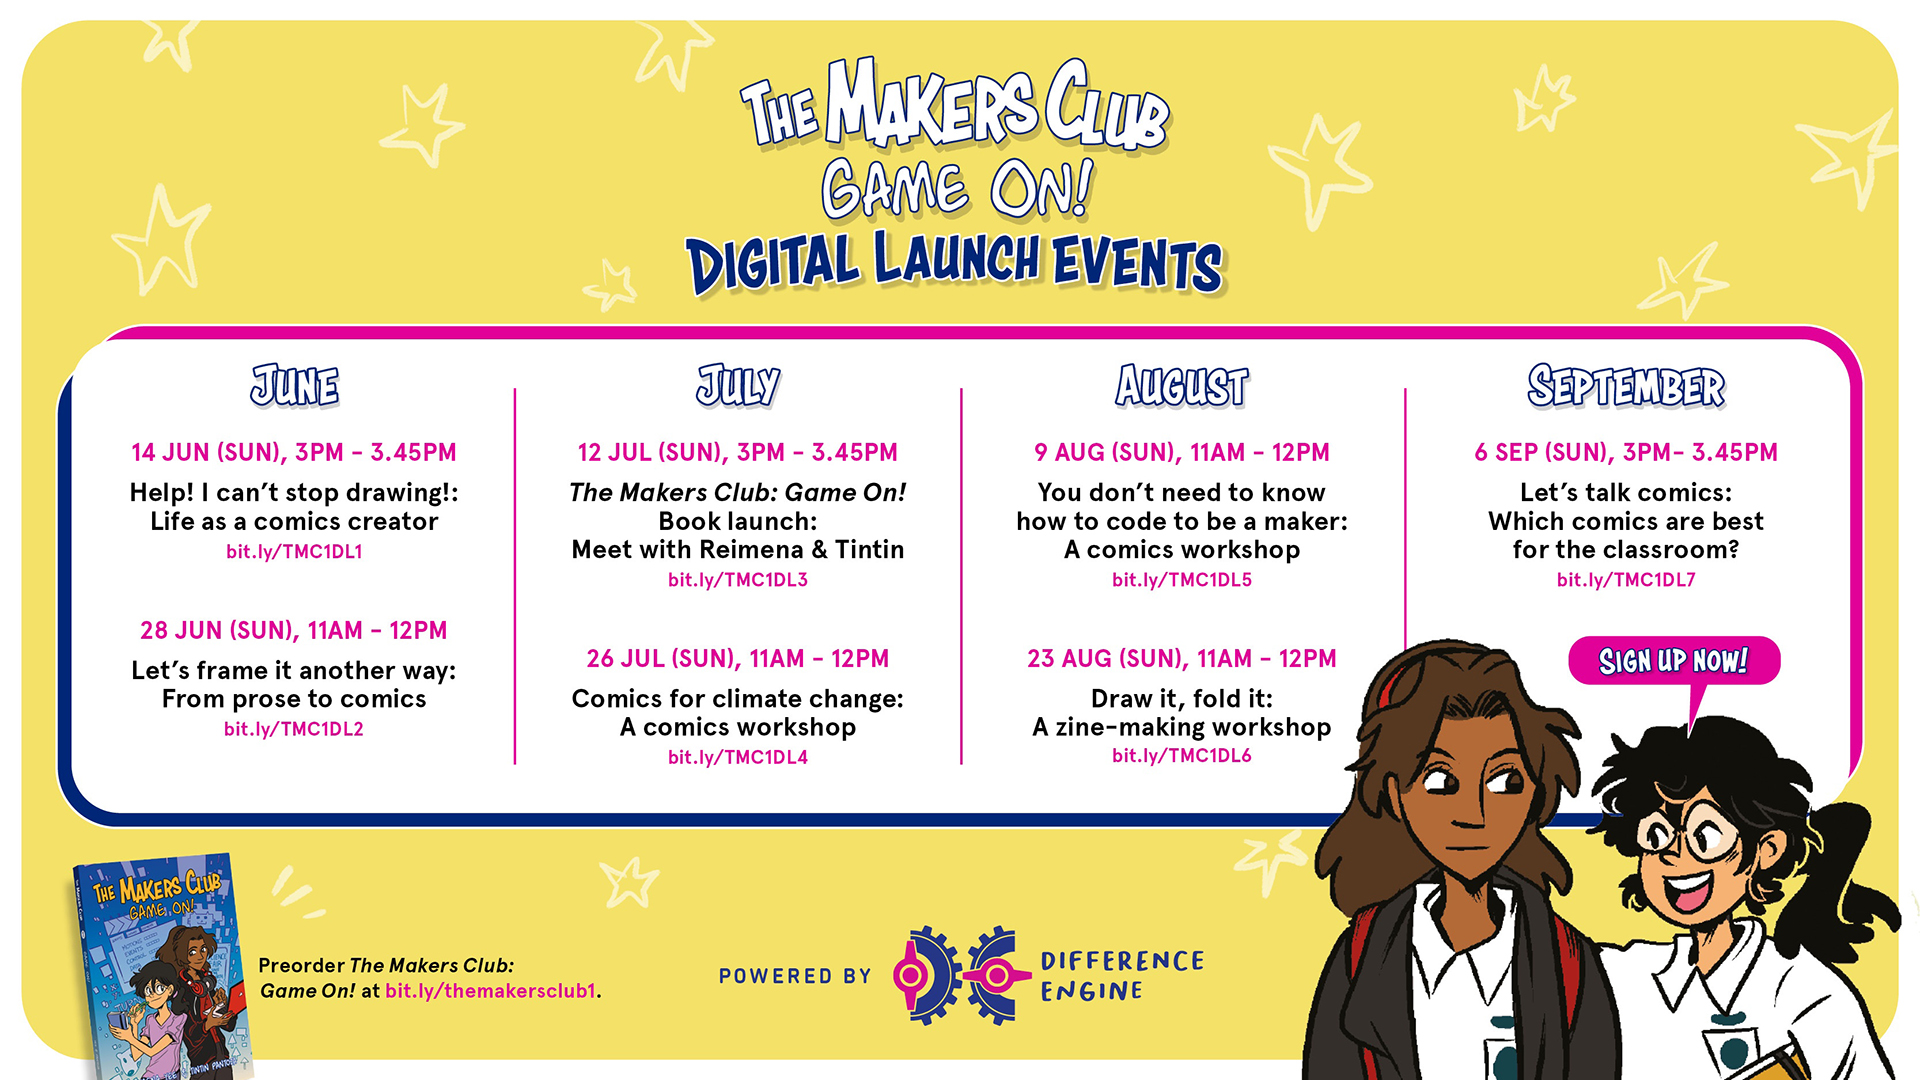 the makers club digital launch events full line up